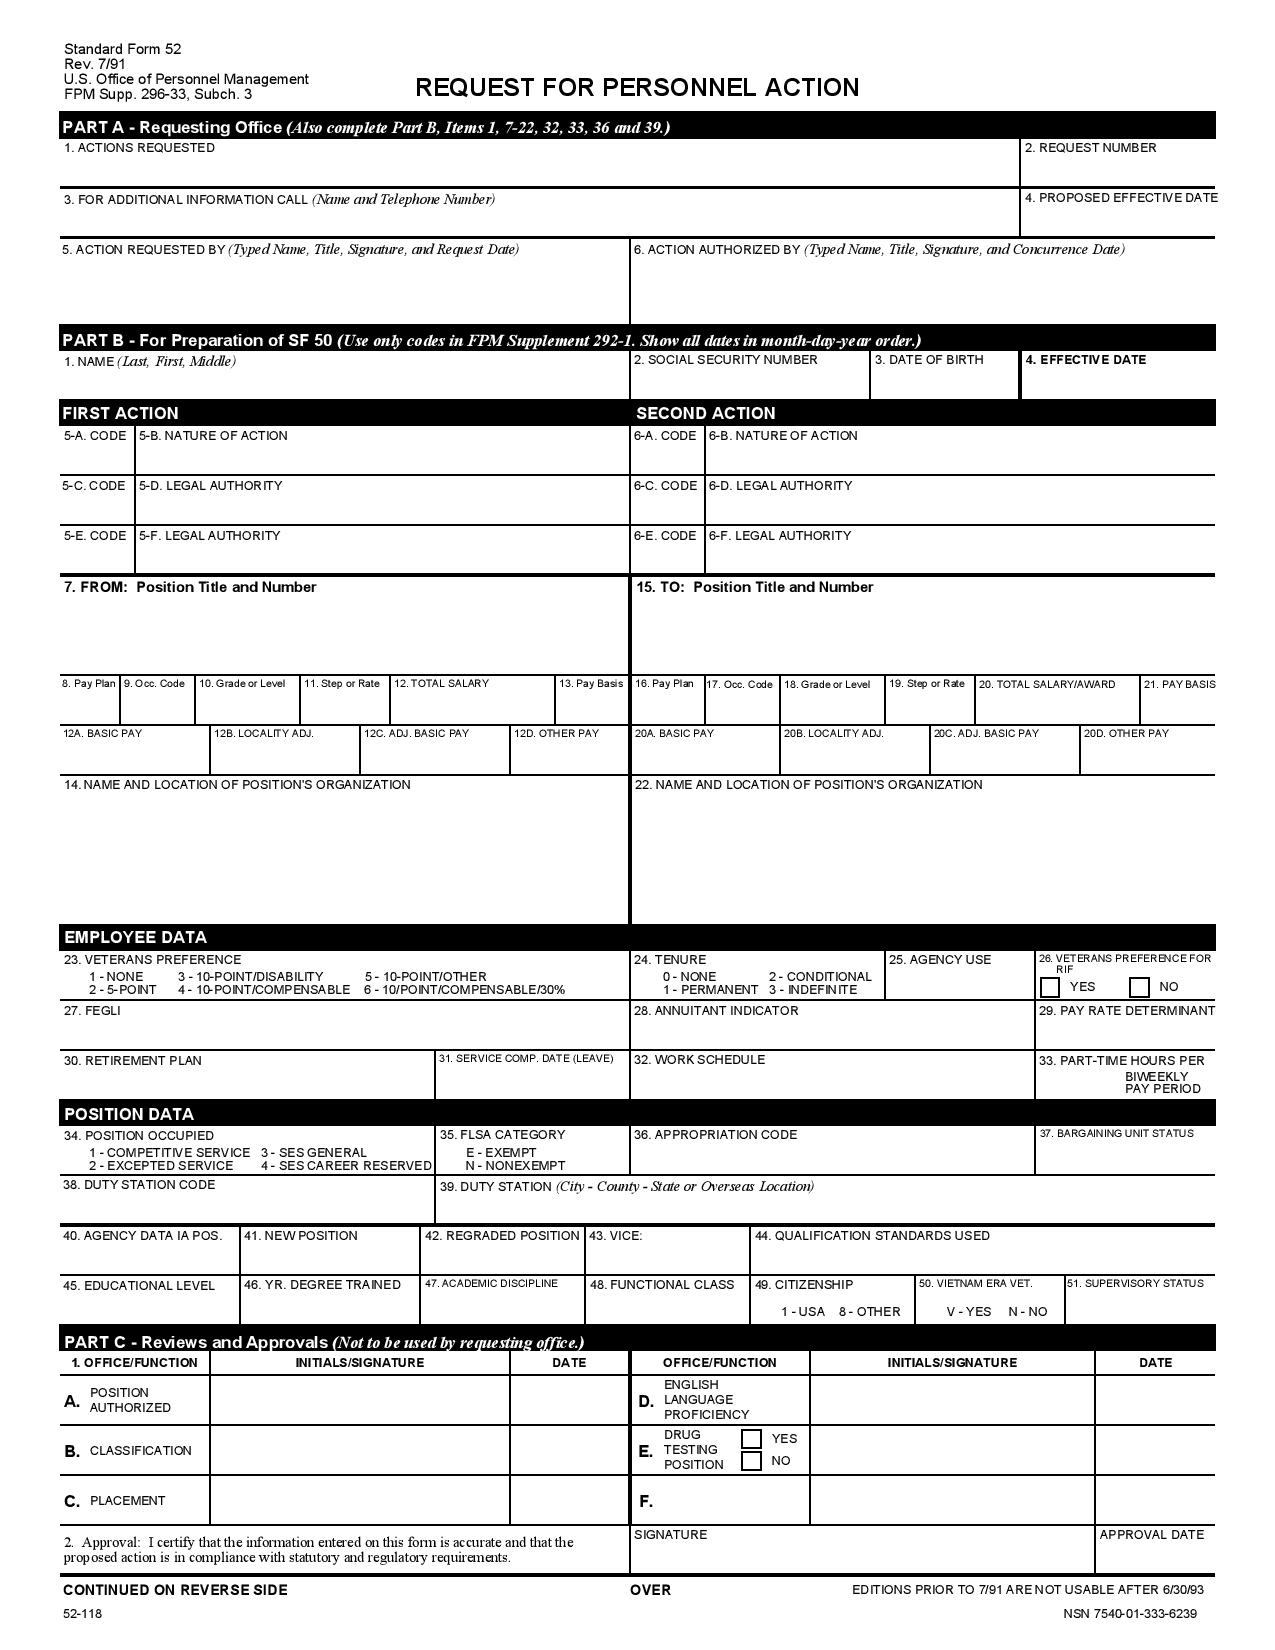 request for employee personnel action form page 0011